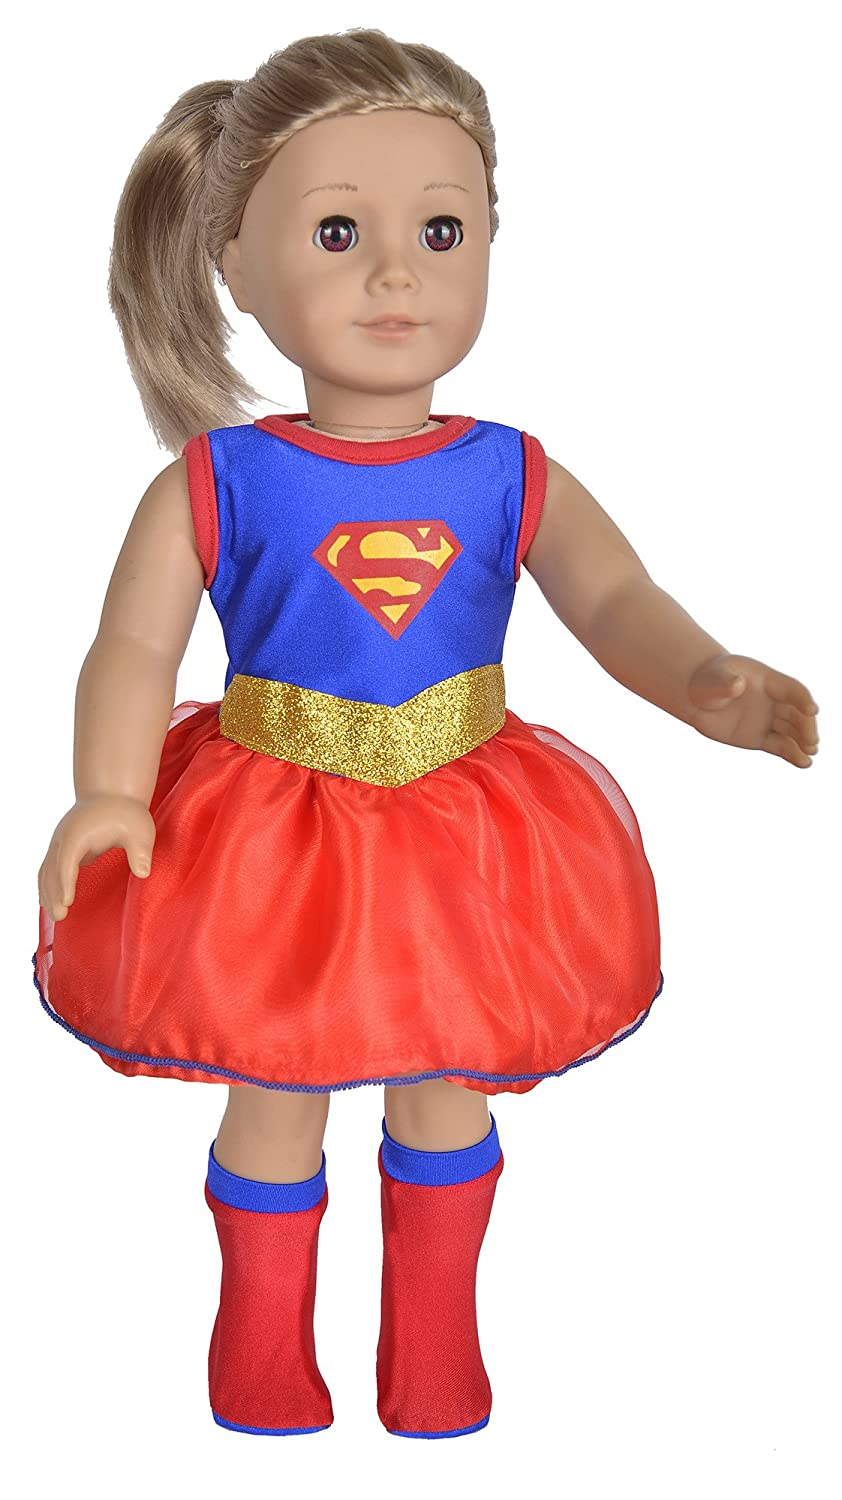 ebuddy Super Girl Hero Set Include Cloak Dress and Stocking Clothes Fits 18 Inch Doll